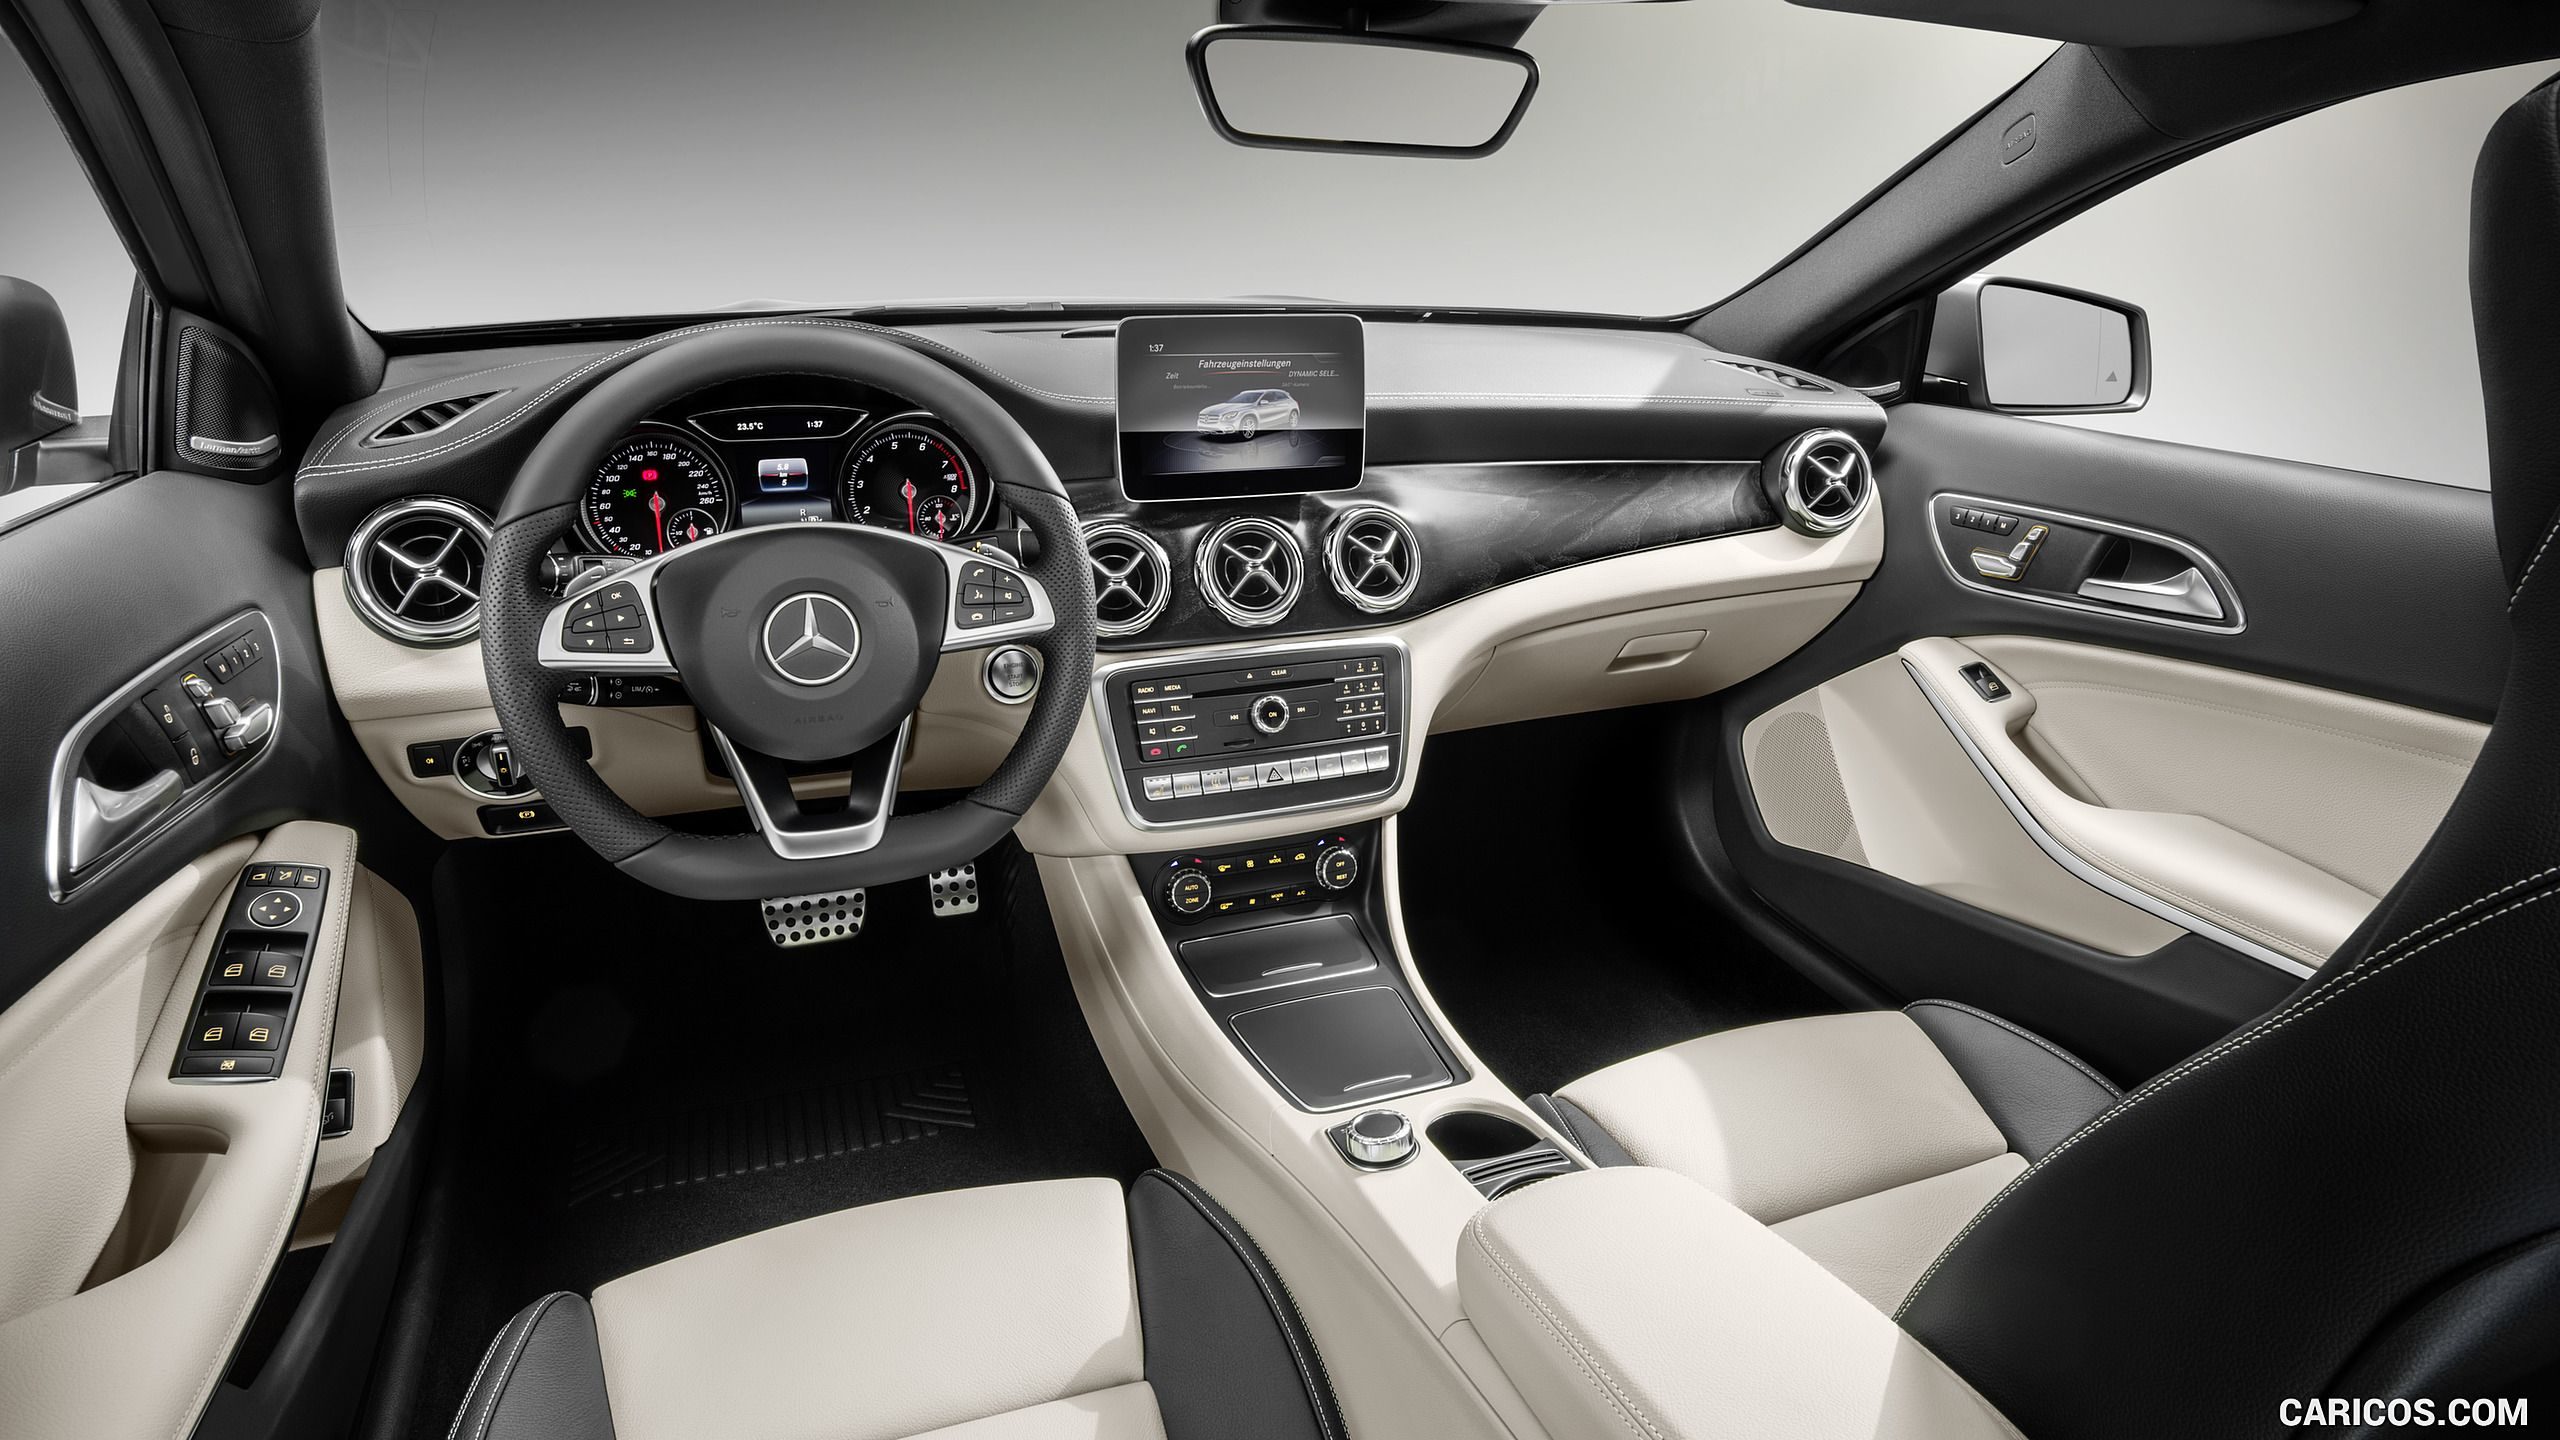 2018 Mercedes-Benz GLA Wallpaper | Art Evereything in 2018 ...